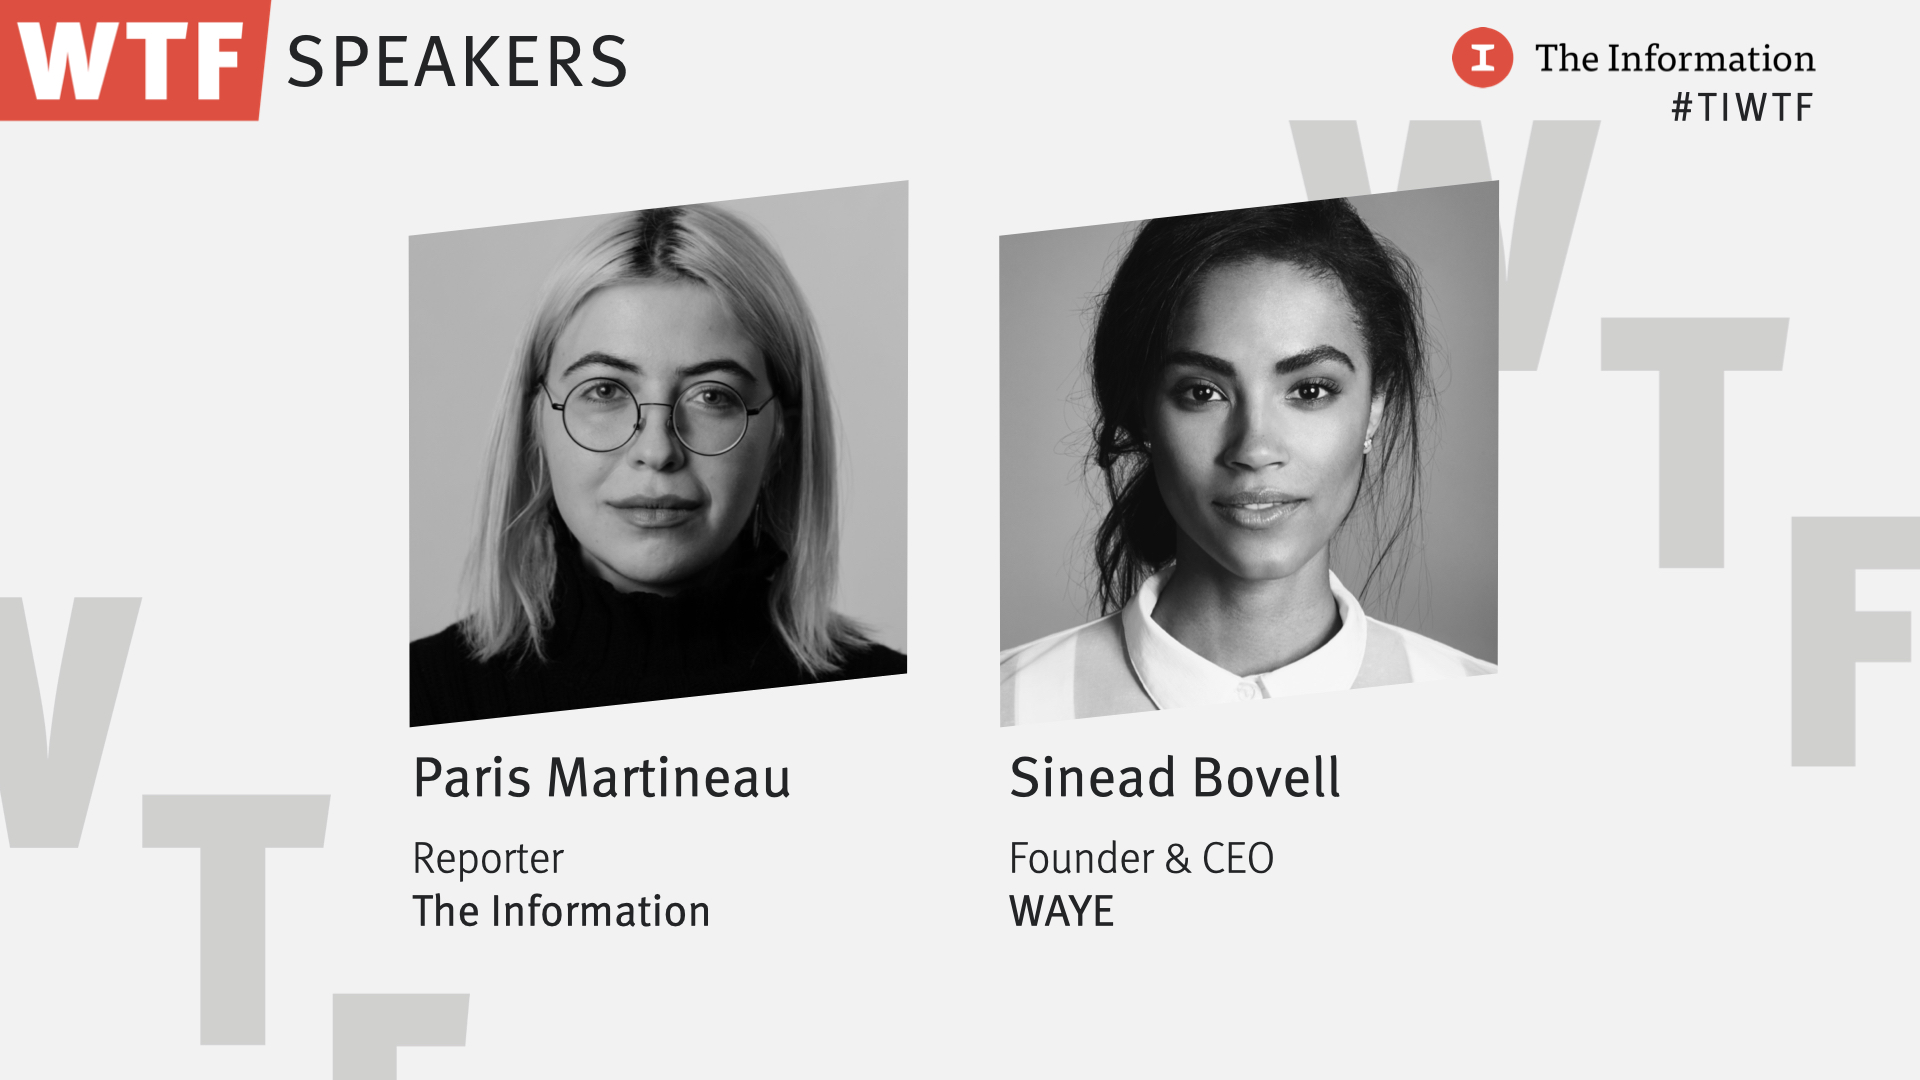 WTF 2021 - Sinead Bovell, Founder & CEO, WAYE in conversation with Paris Martineau, Reporter, The Information